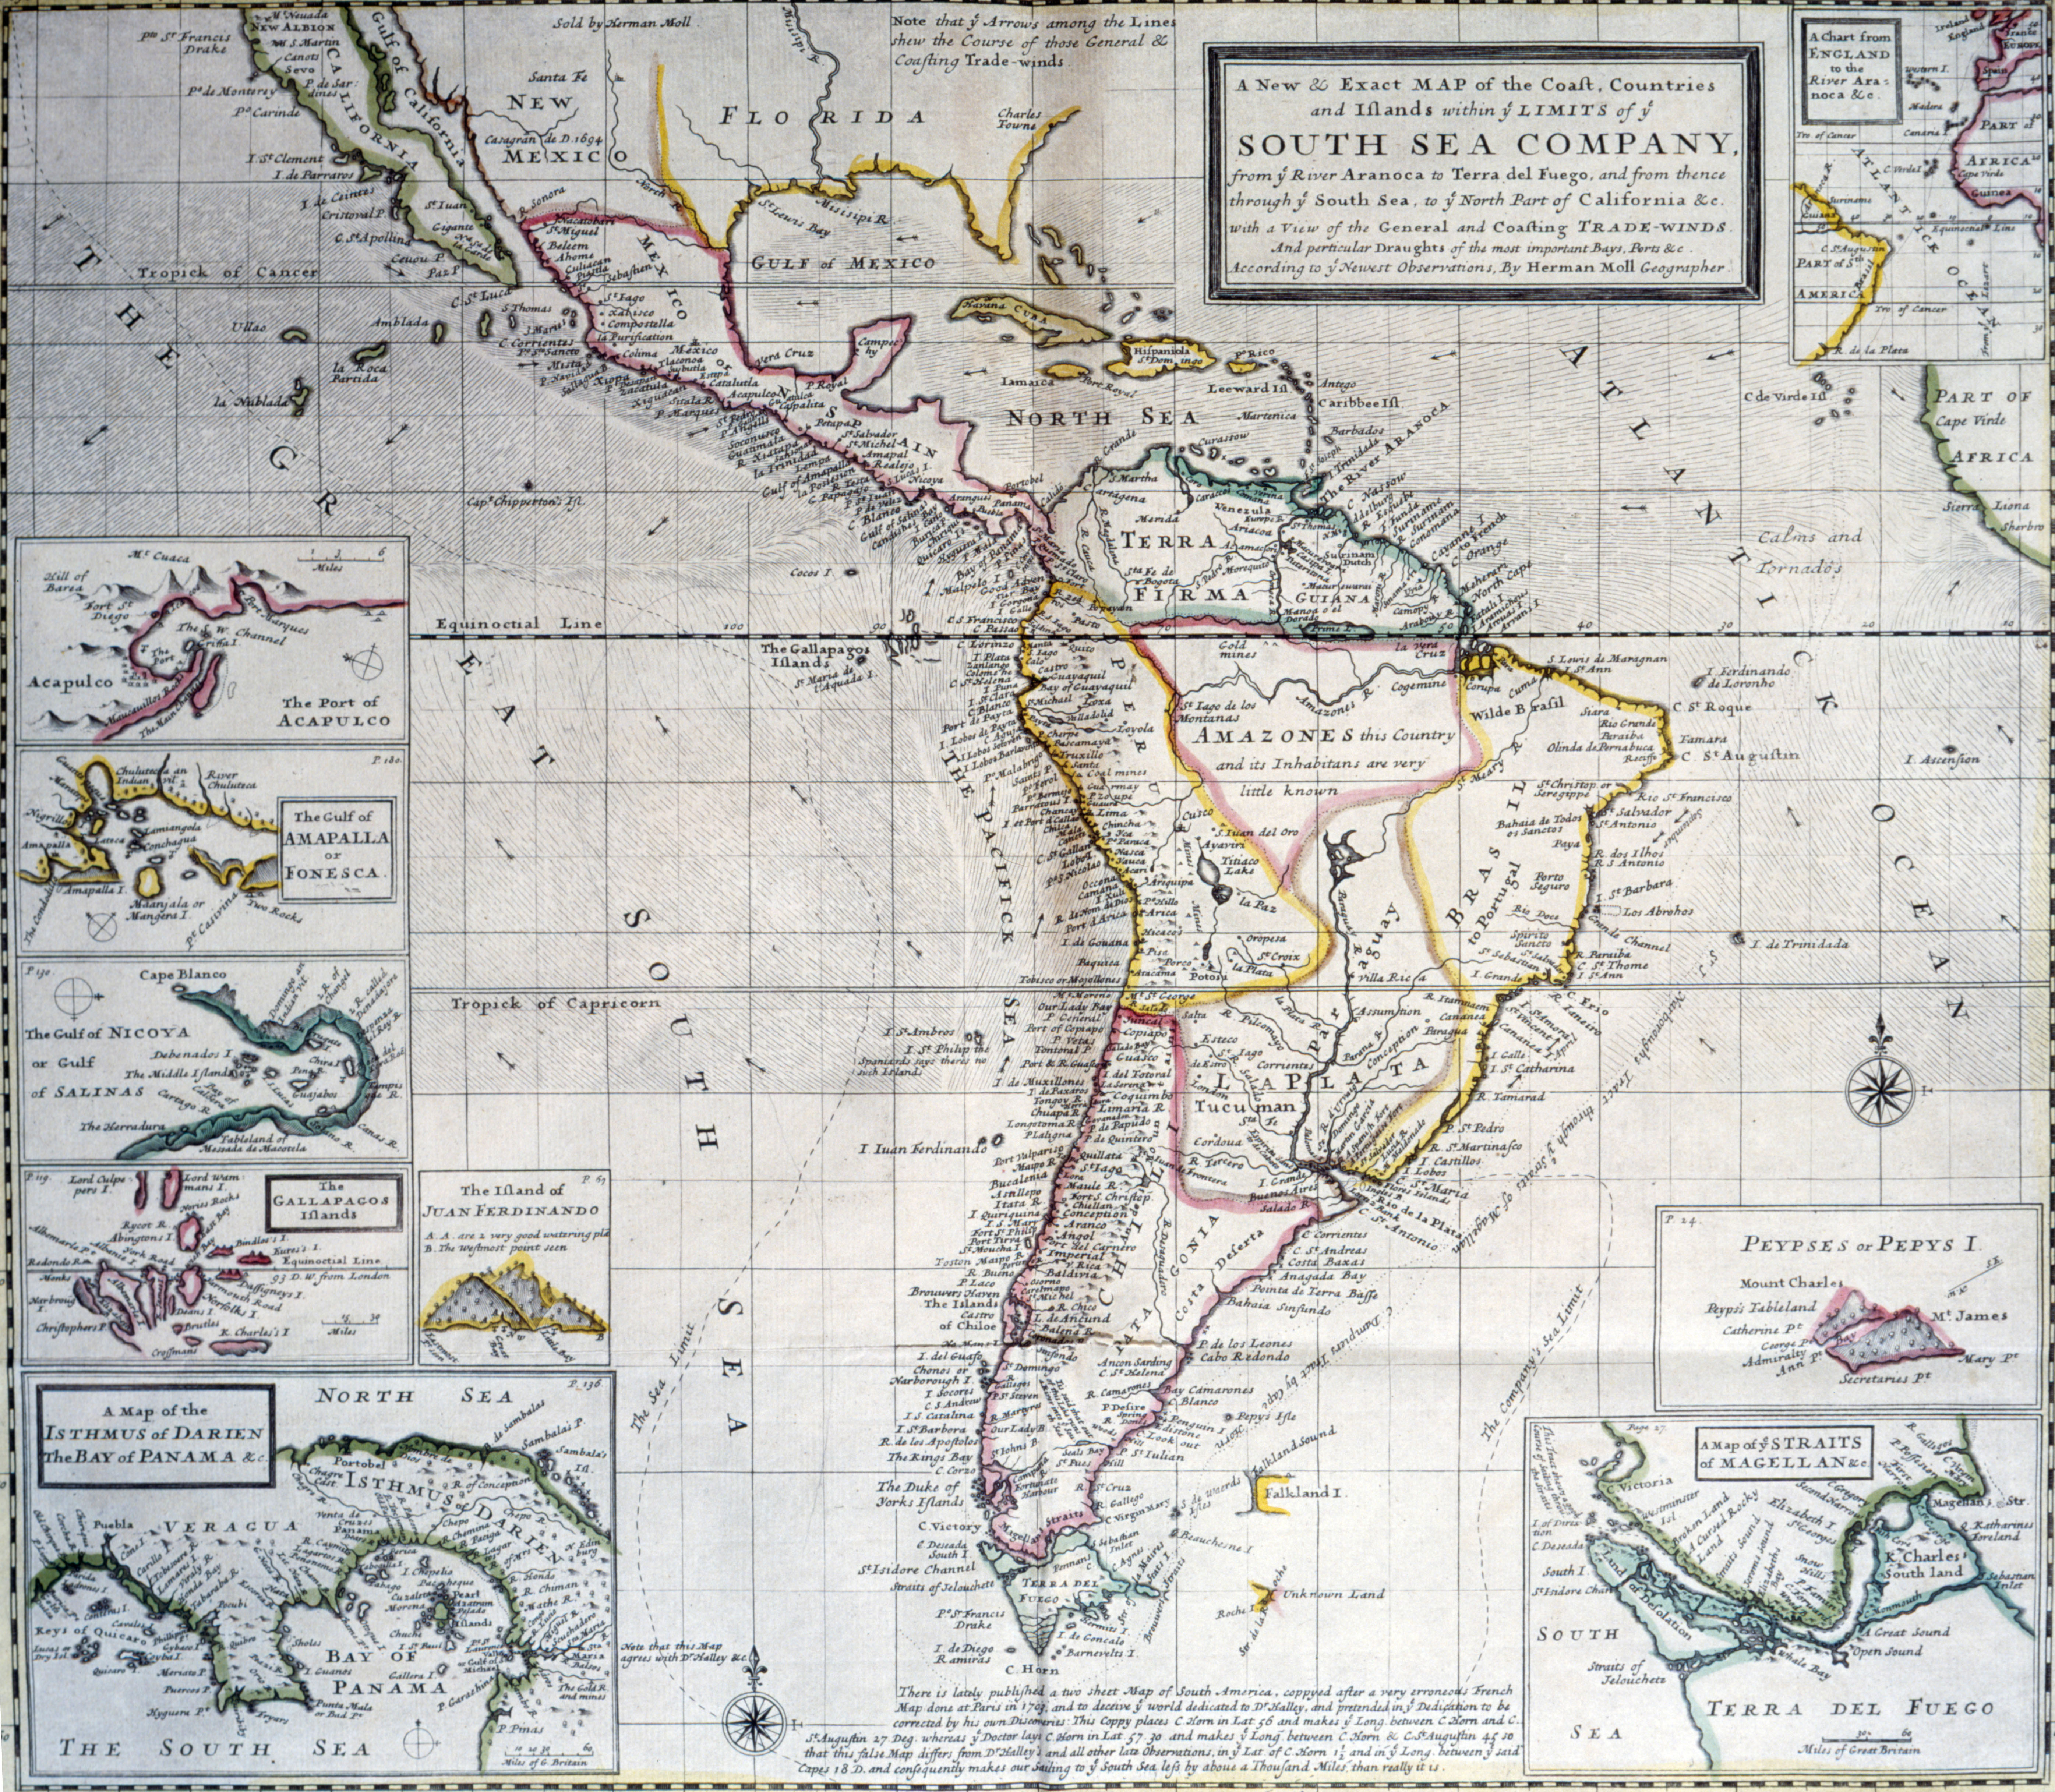 Limits of the South Sea Company by Herman Moll from In His the World Described, USA, Chicago, Newberry Library